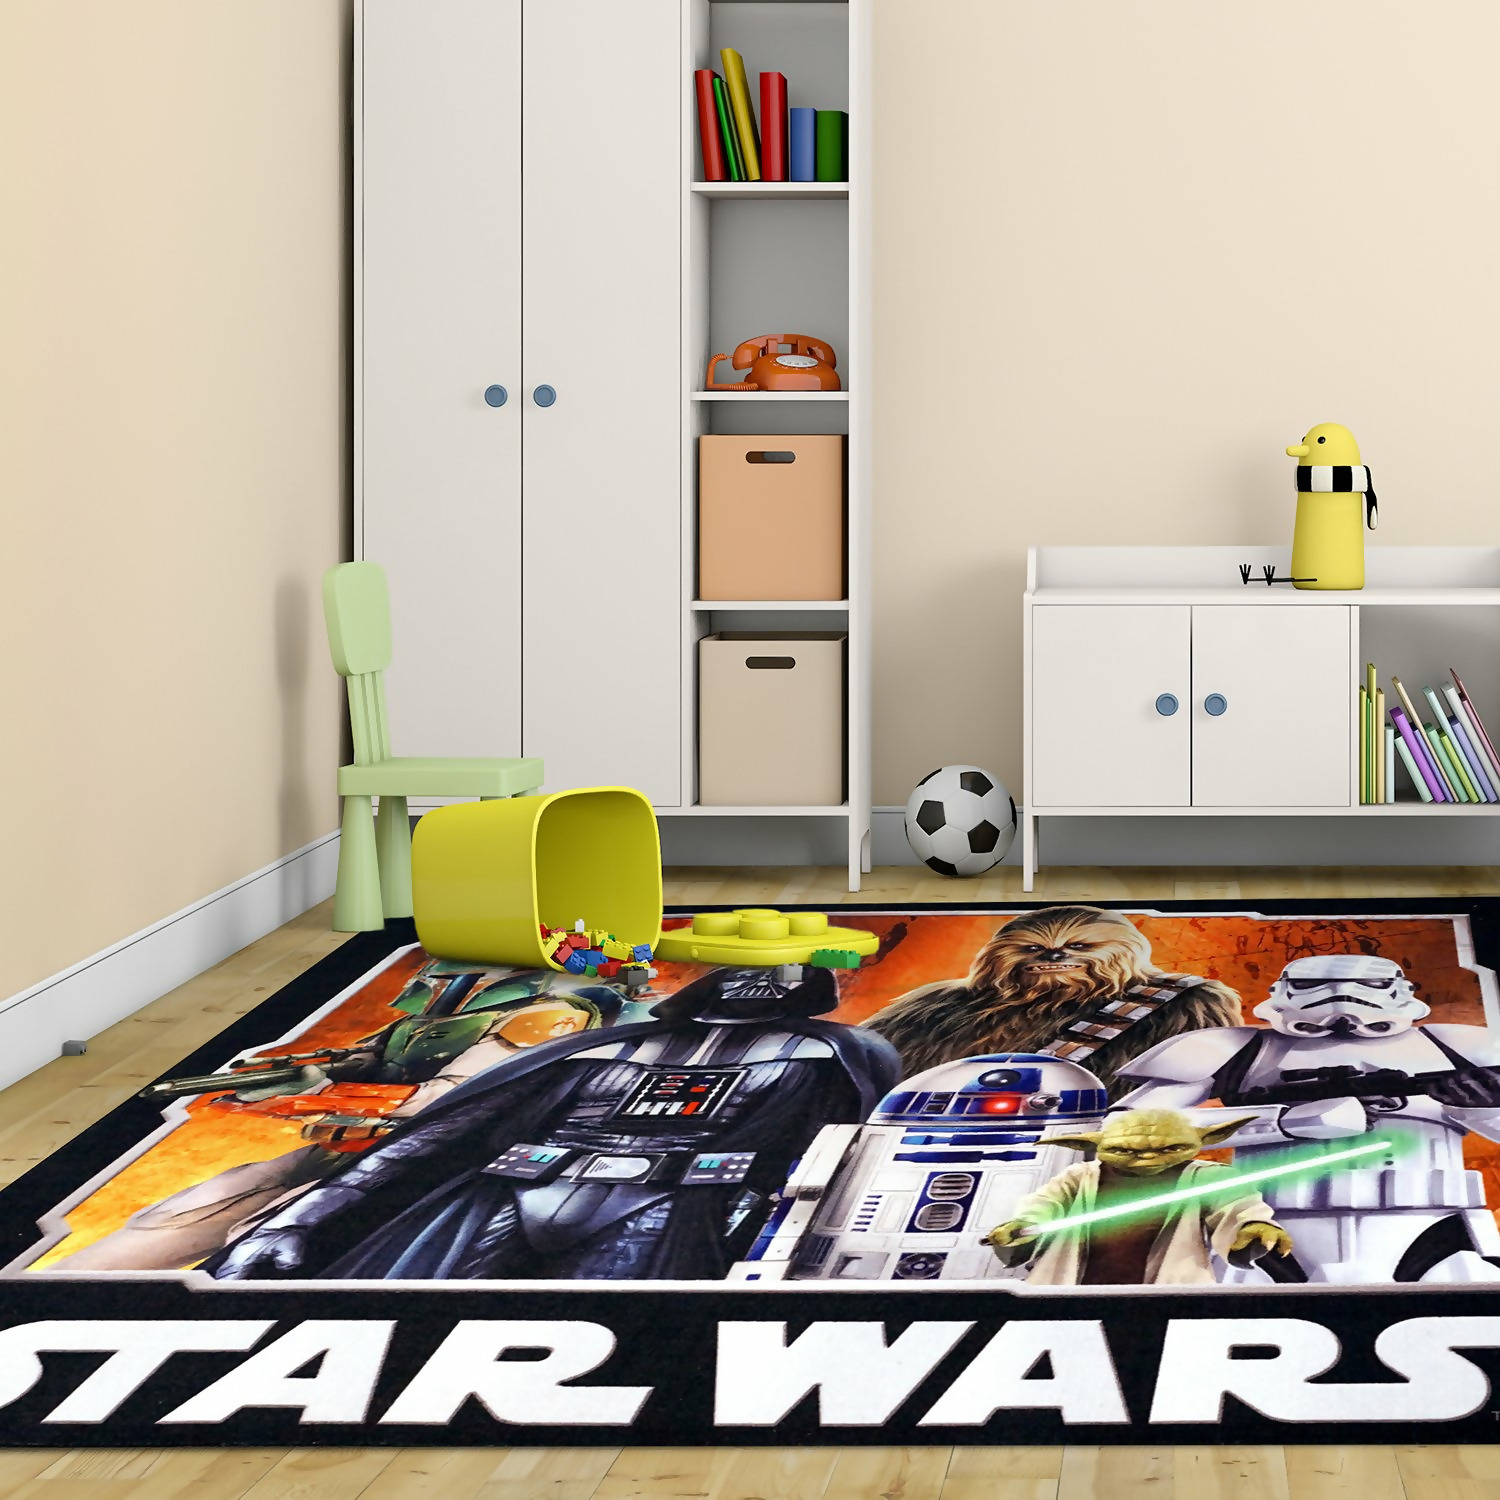 Star Wars Rugs Or Carpets For Bedrooms